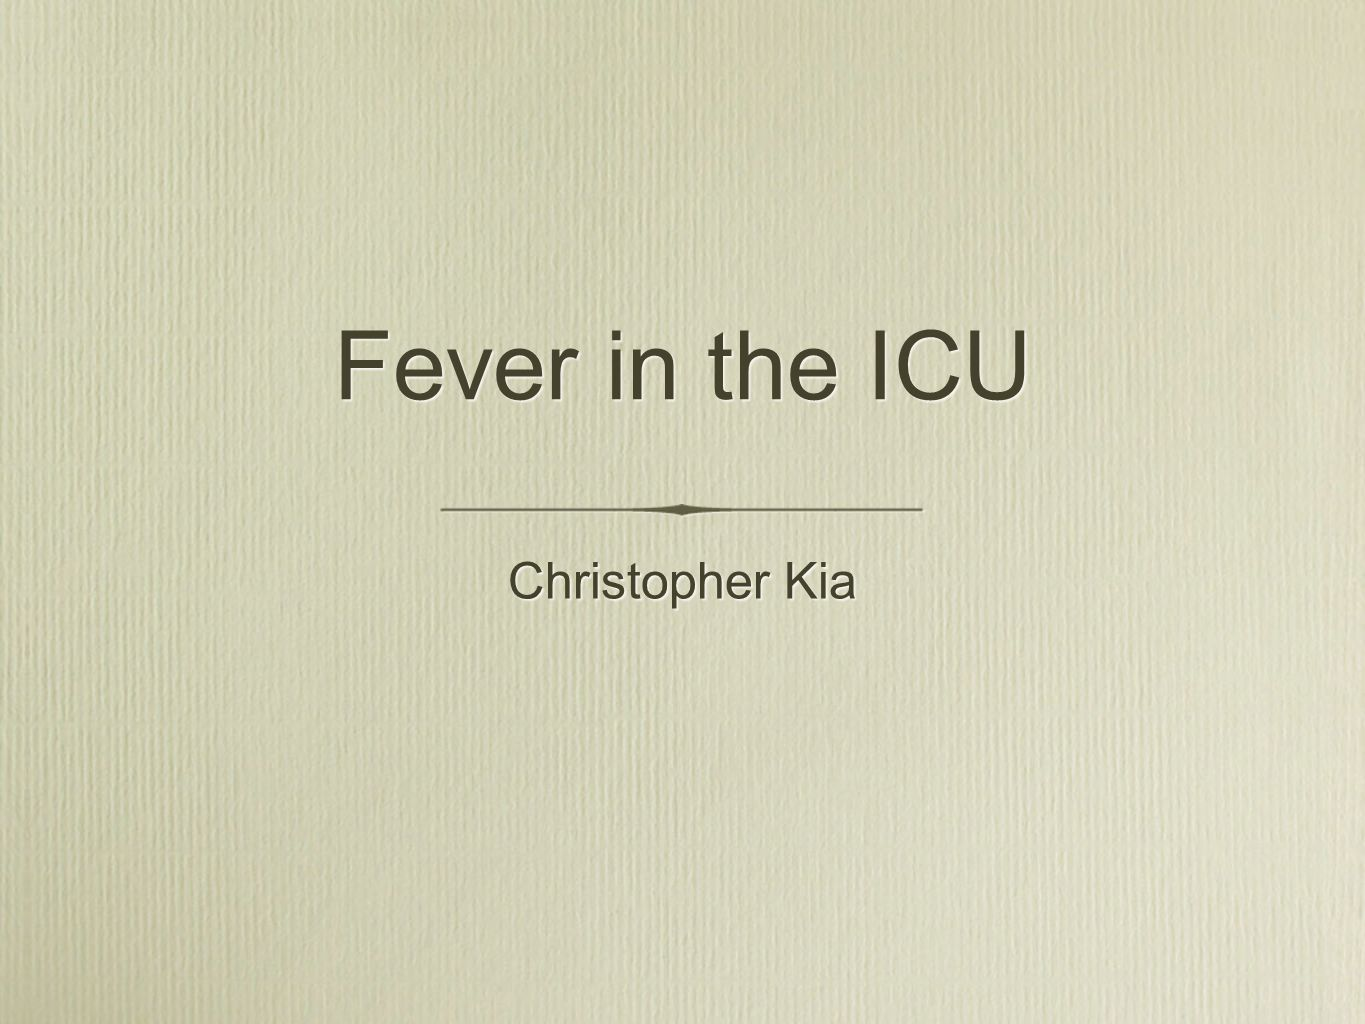 Outline Definition of fever Why fever in the ICU is important Temperature measurement Etiology - infectious and noninfectious causes Diagnostic approach Definition of fever Why fever in the ICU is important Temperature measurement Etiology - infectious and noninfectious causes Diagnostic approach